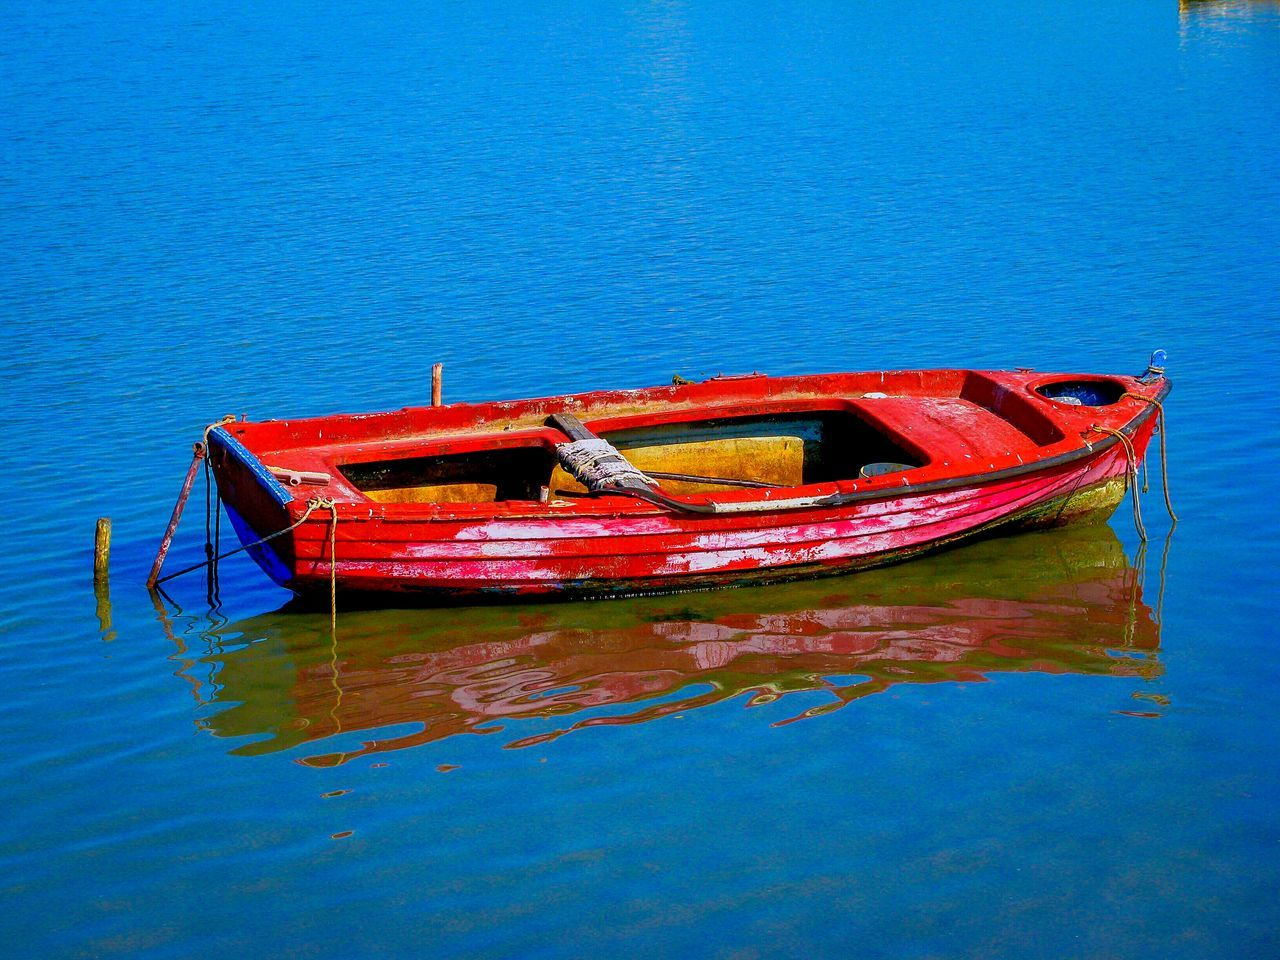 Red Boat Moored Over Lake